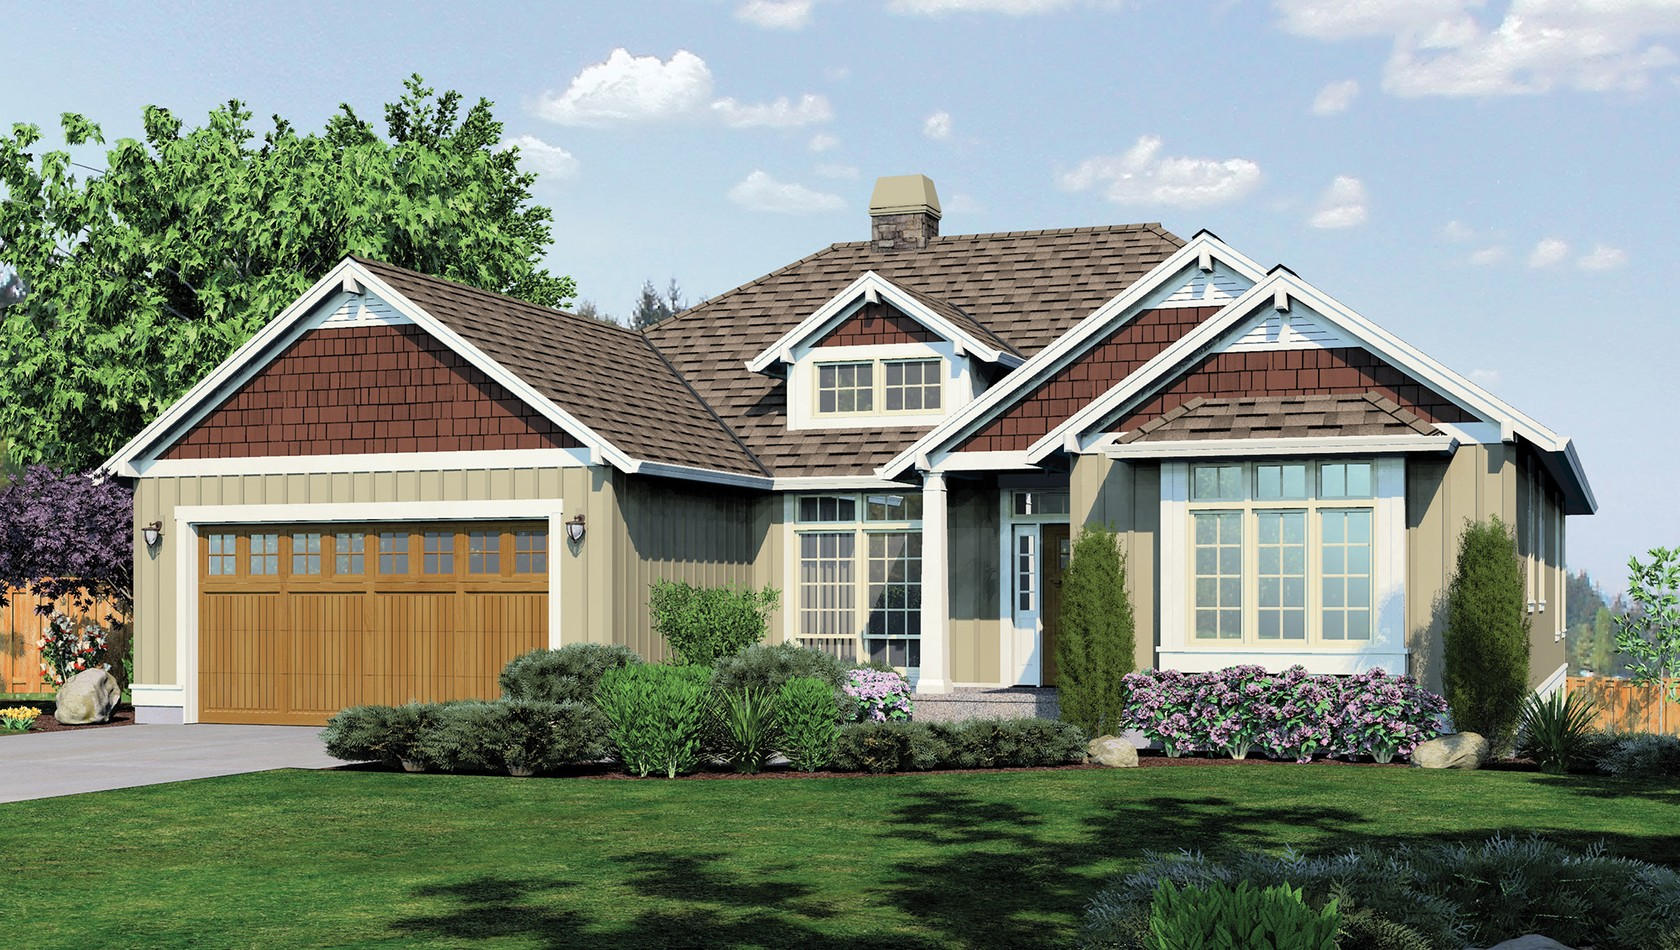 Main image for house plan 1236: The Linden